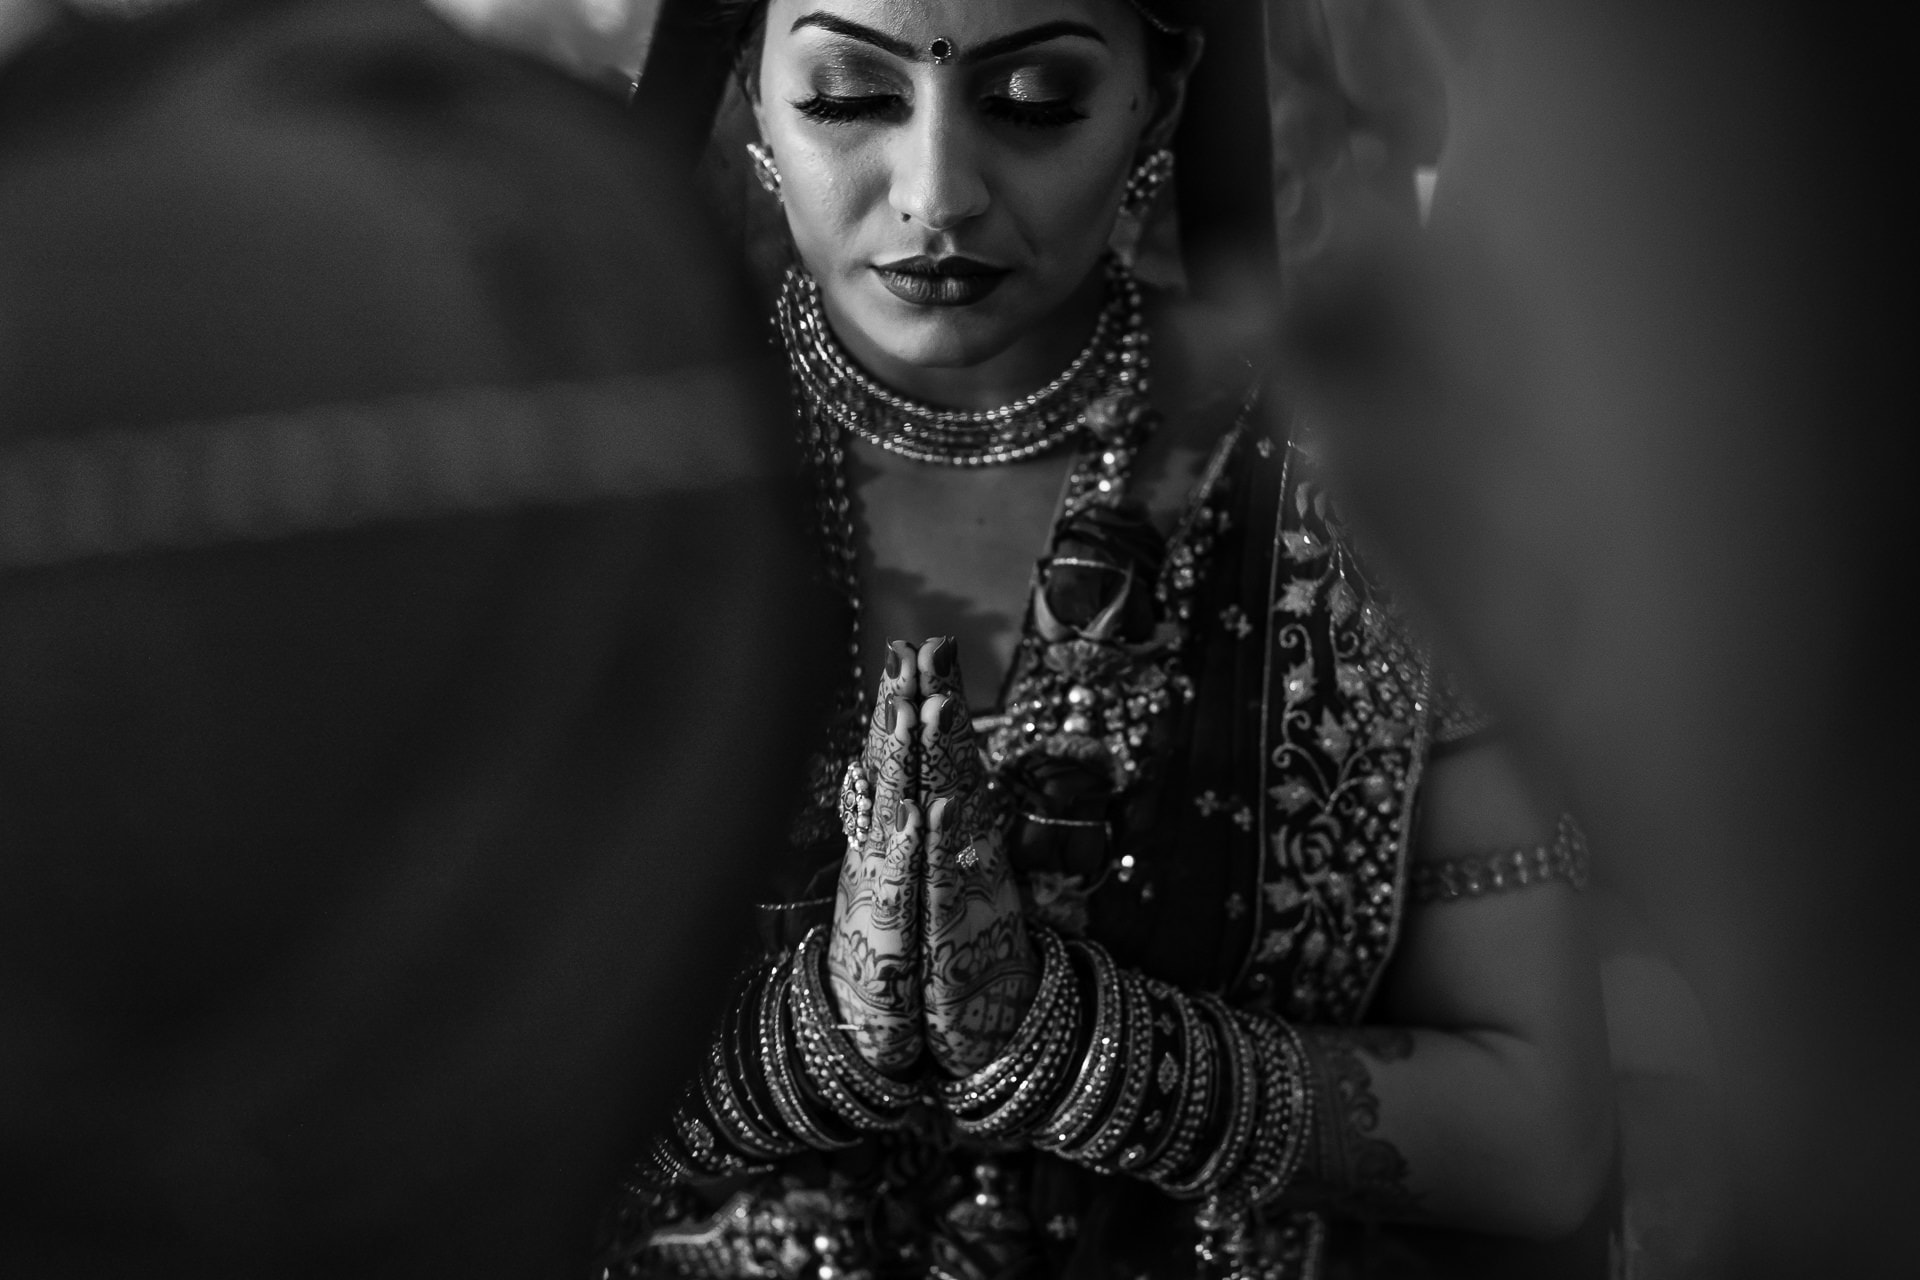 Bride with hands in Prayer position